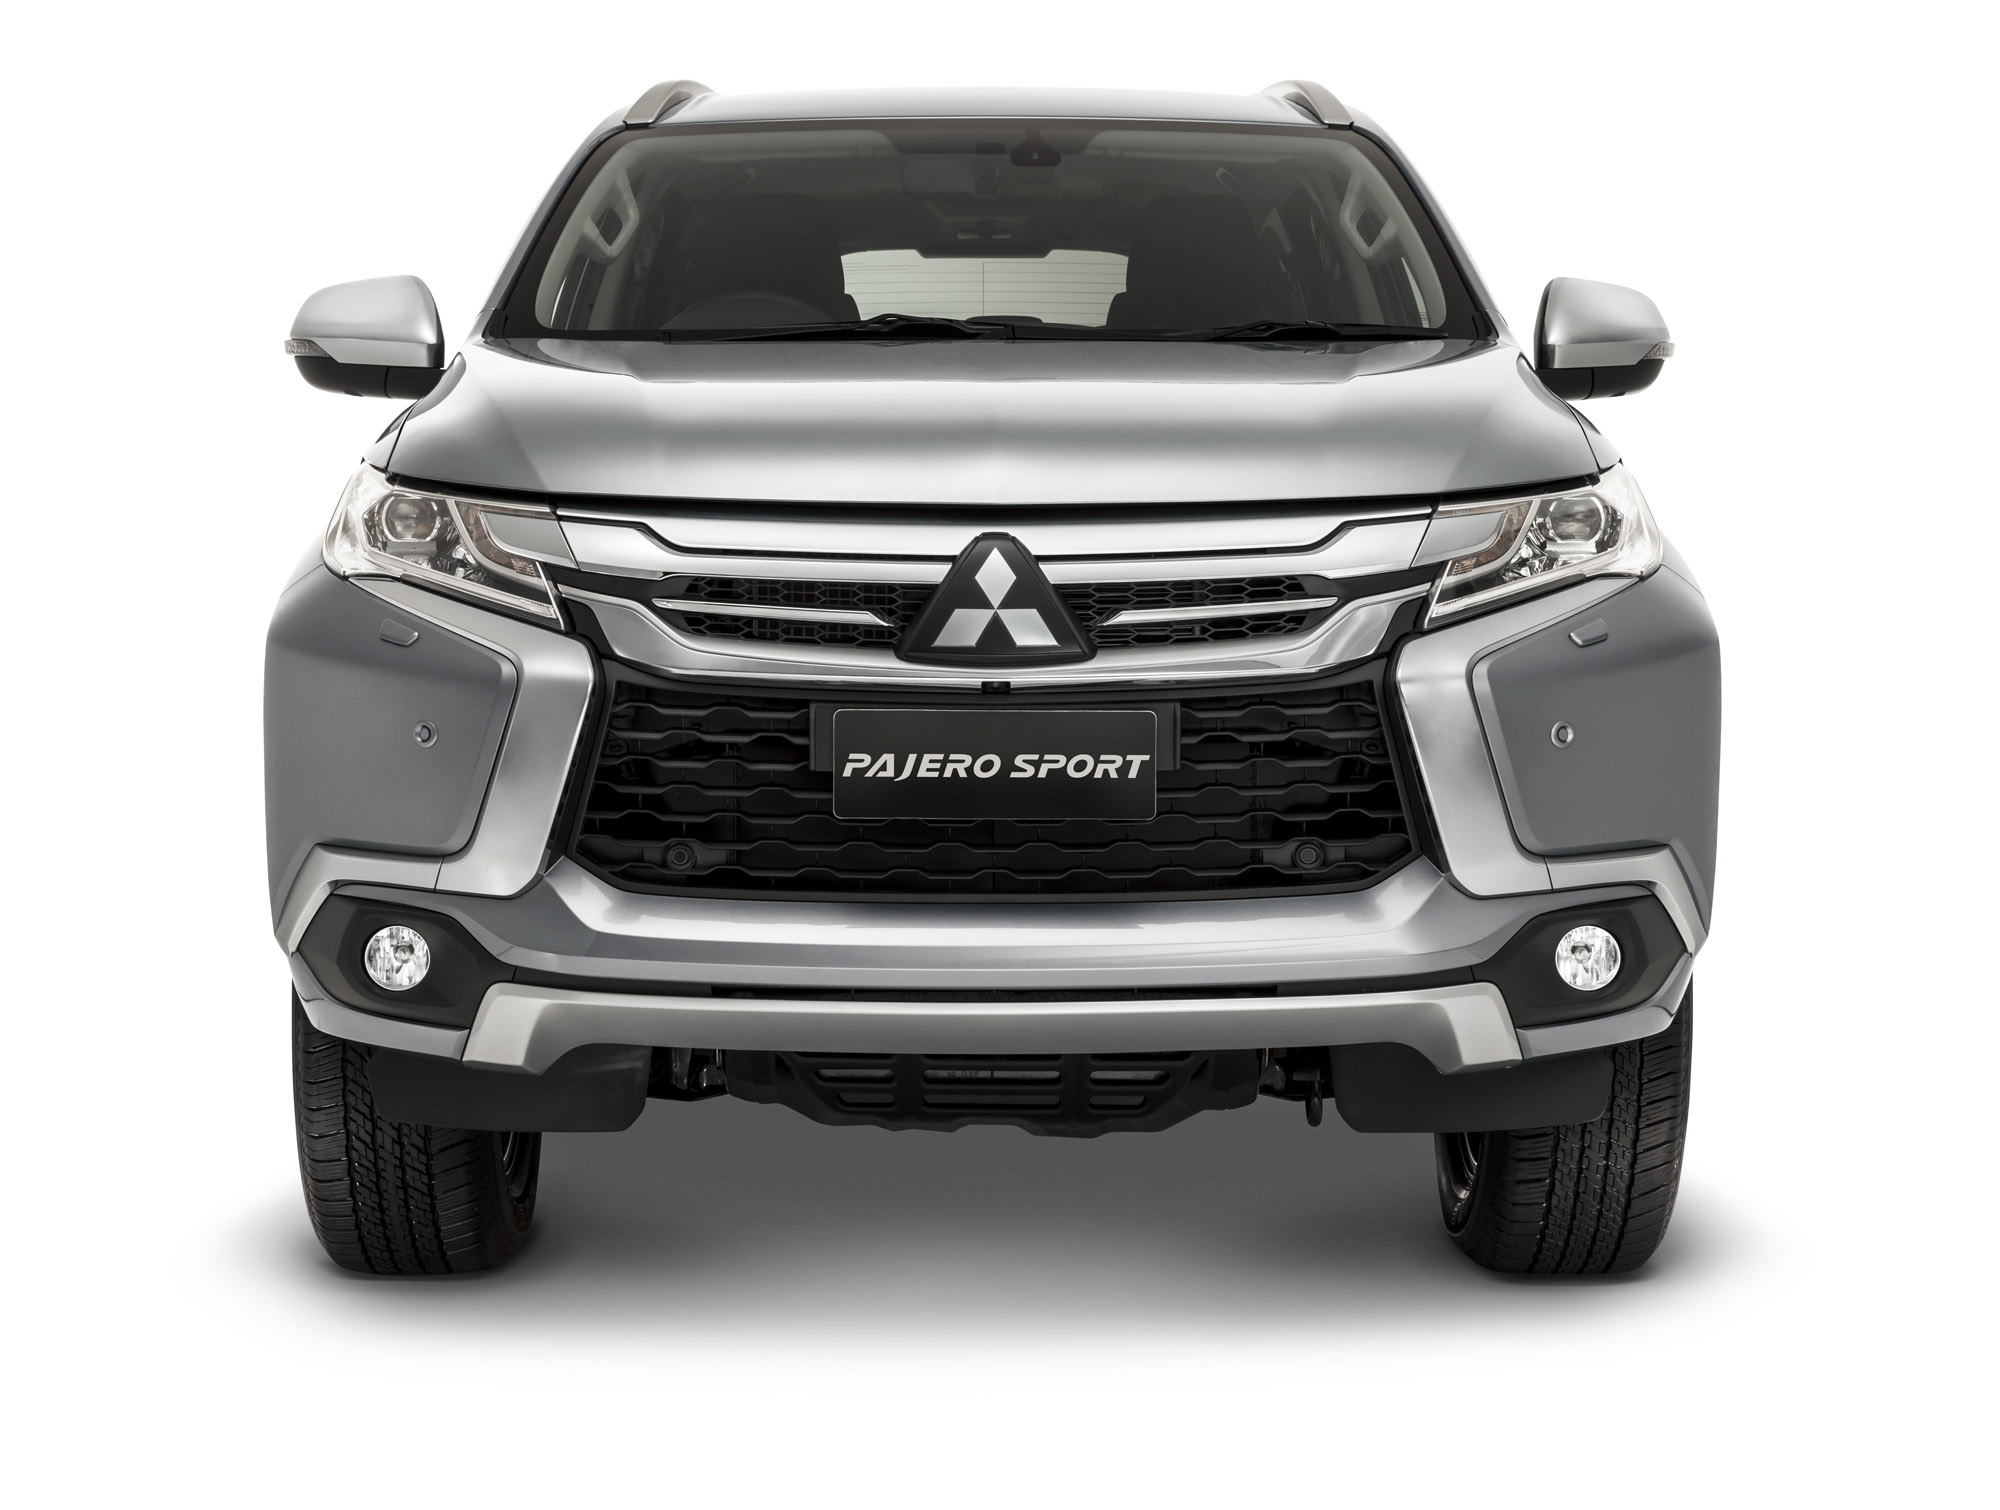 2016 Mitsubishi Pajero Sport Front (Photo 7 of 23)